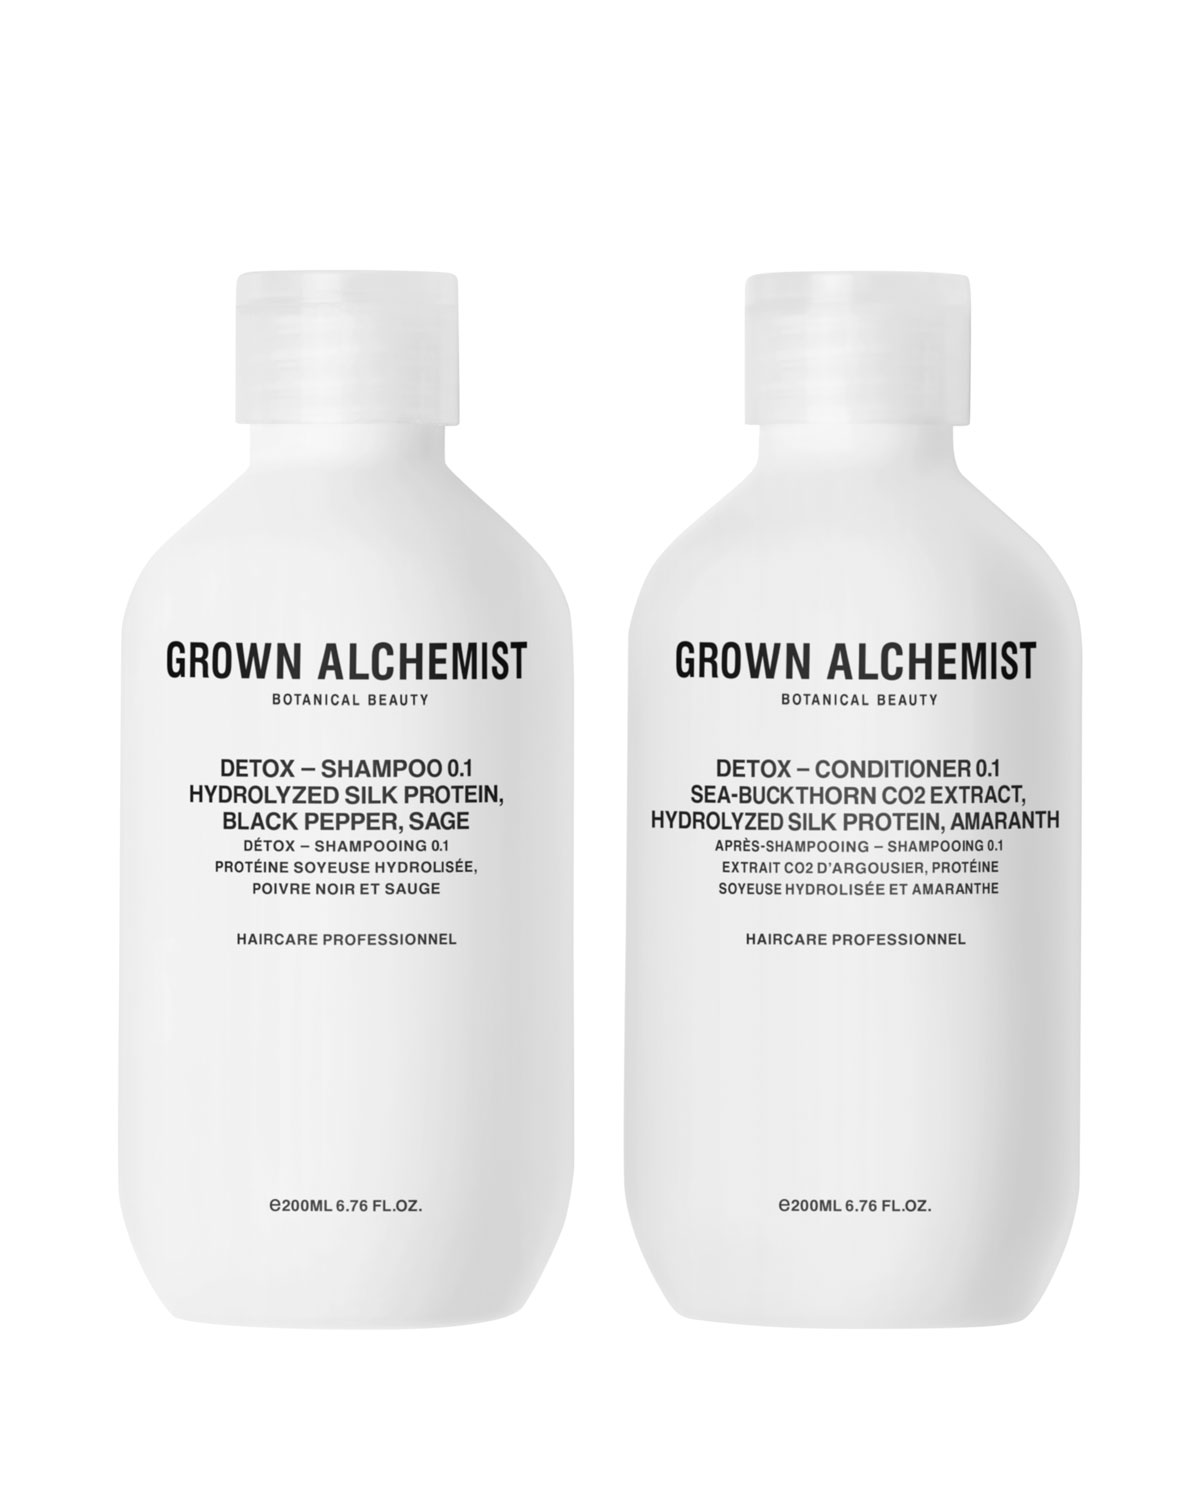 GROWN ALCHEMIST Detox Haircare Twinset, 2 X 6.7 Oz./ 200 Ml